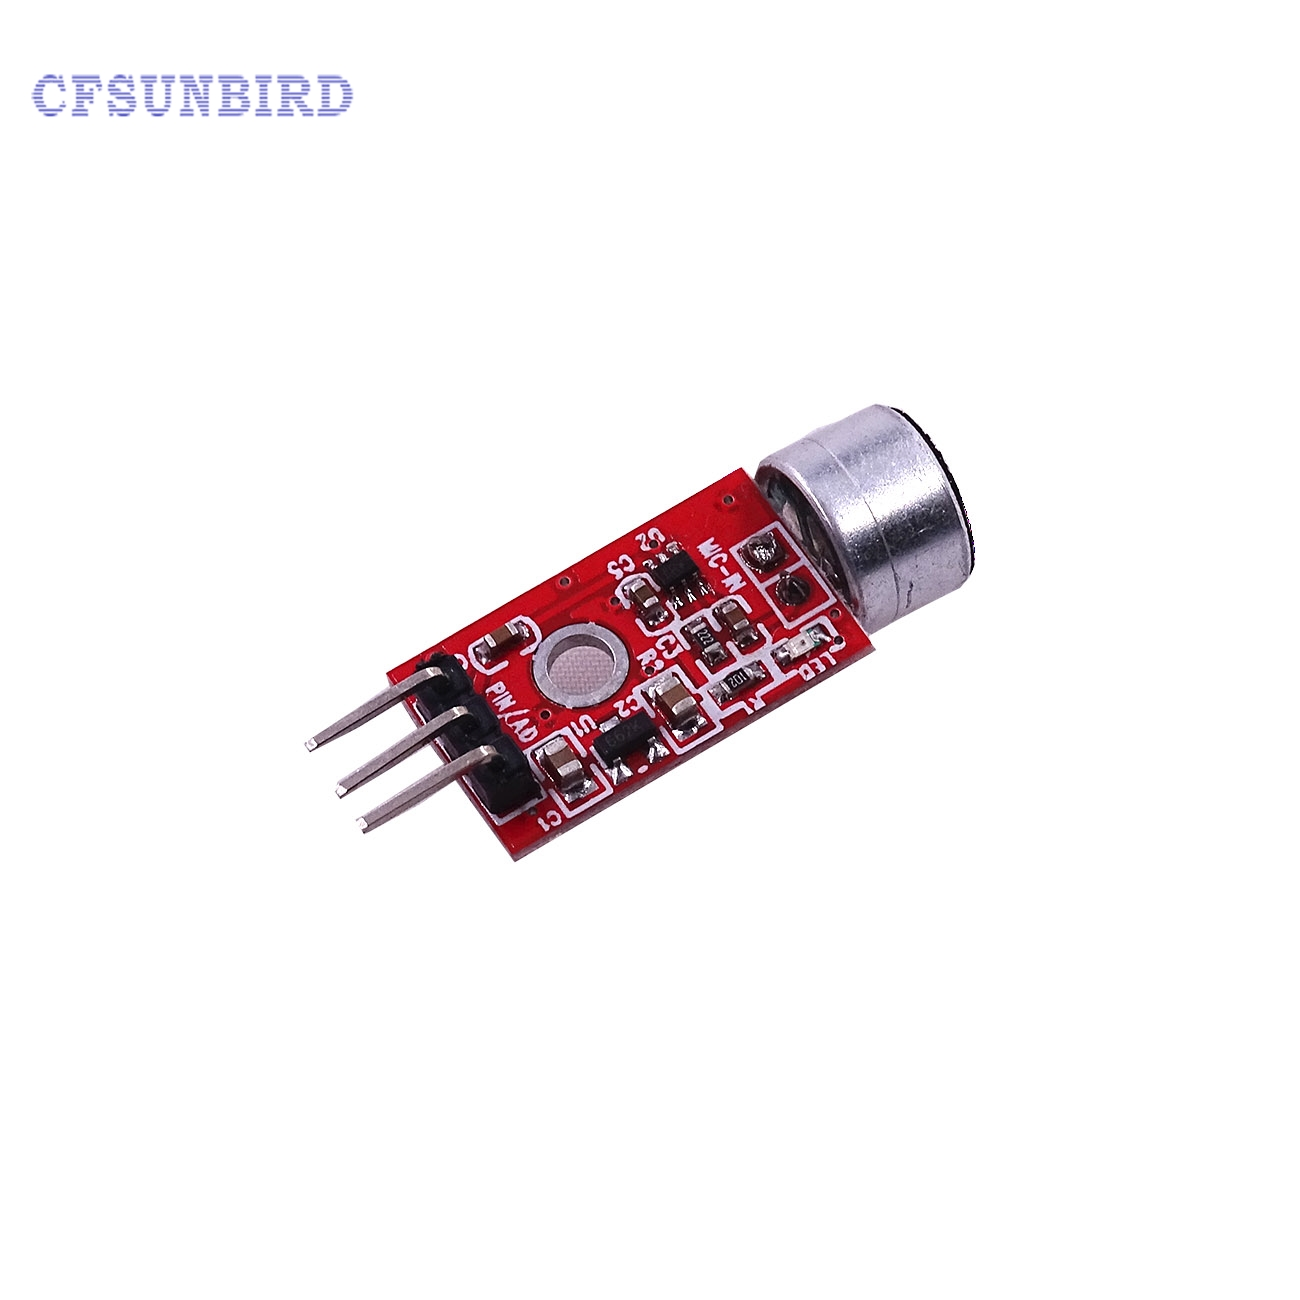 все цены на  CFsunbird Best Price!!! 1PCS MAX9812 Microphone Amplifier Sound MIC Voice Module for Arduino 3.3V/3.5V  онлайн